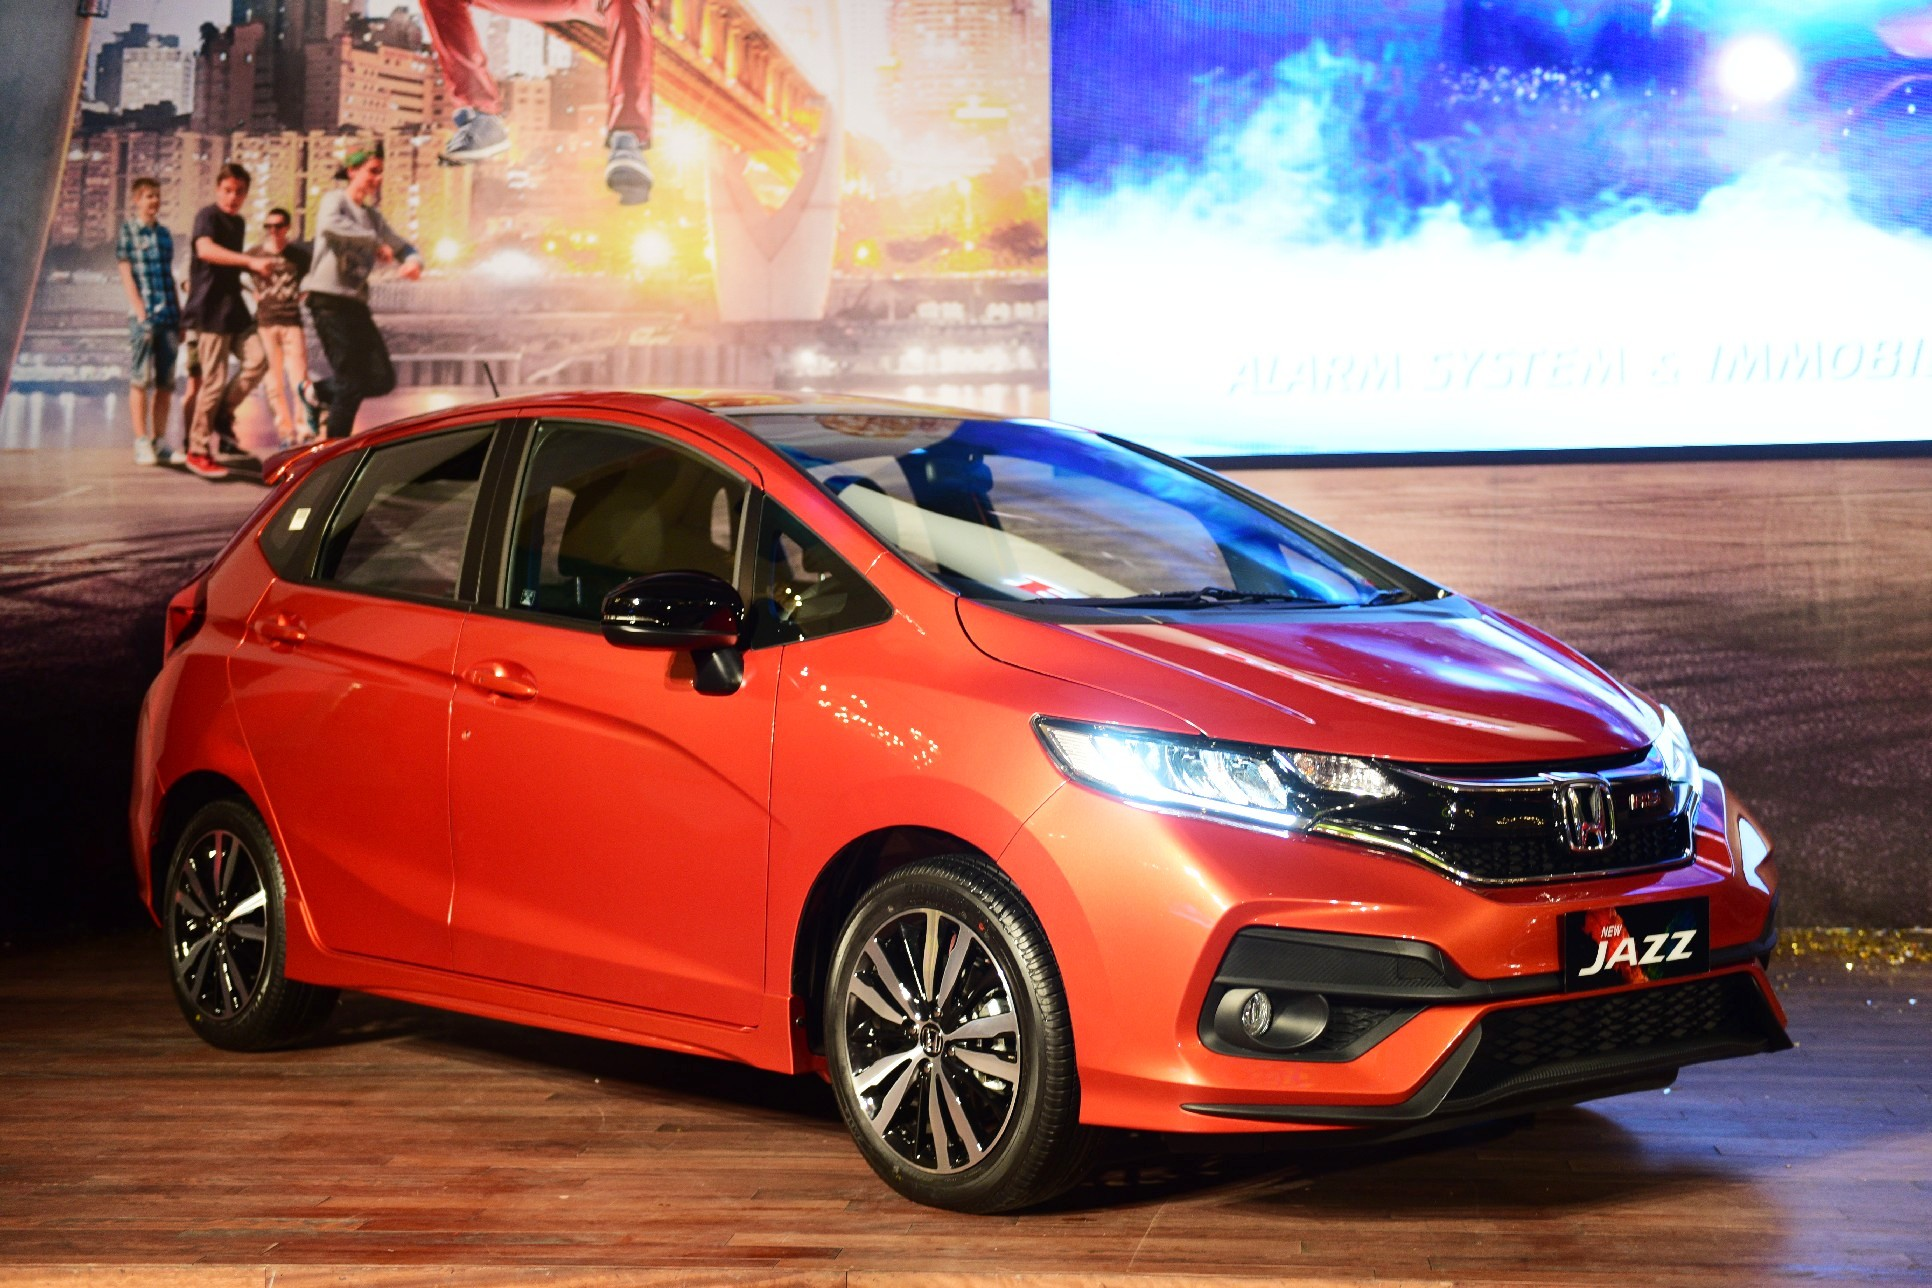 2018 honda jazz rs. interesting jazz all new jazz rs 2018 model launch to honda jazz rs c